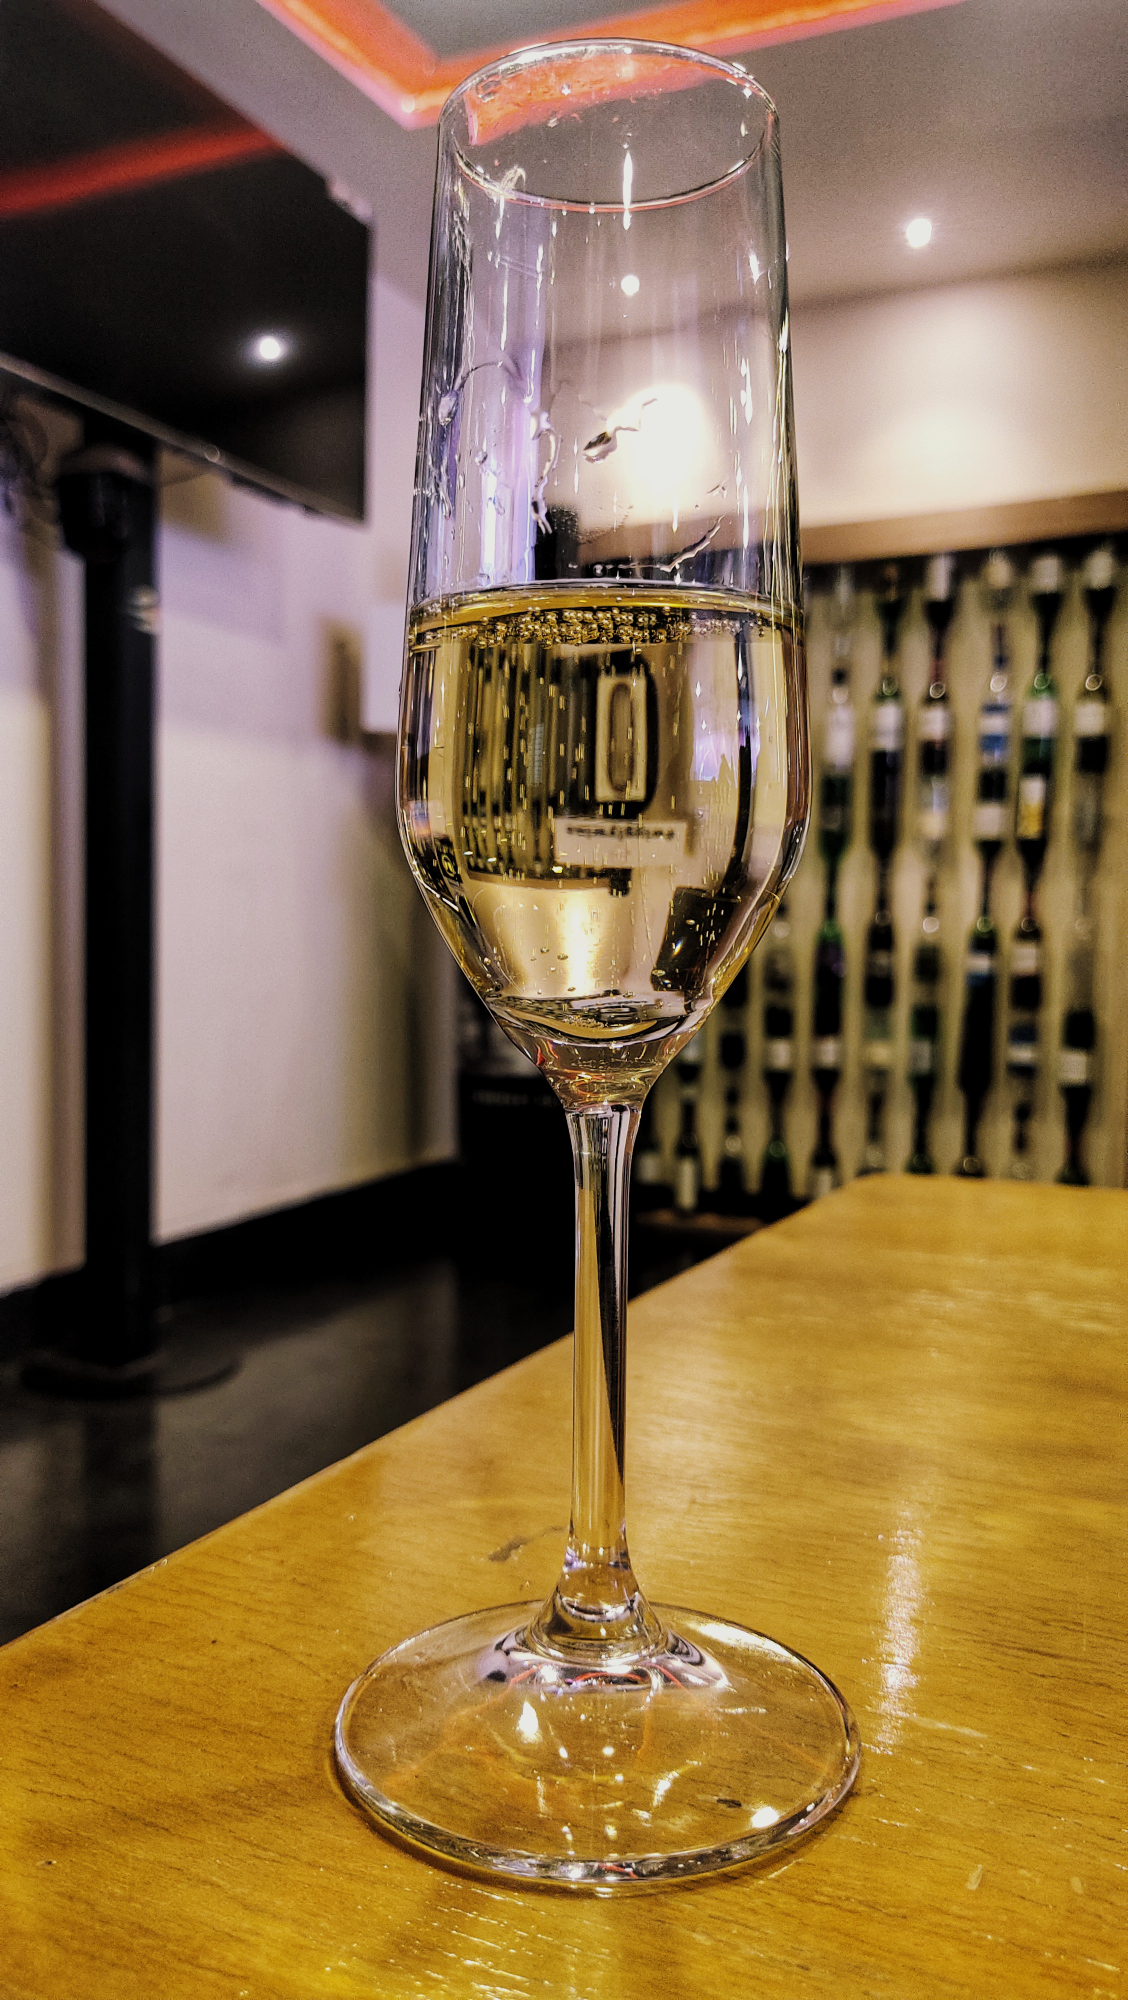 Wine tasting And pairing event at wiggly wine  image